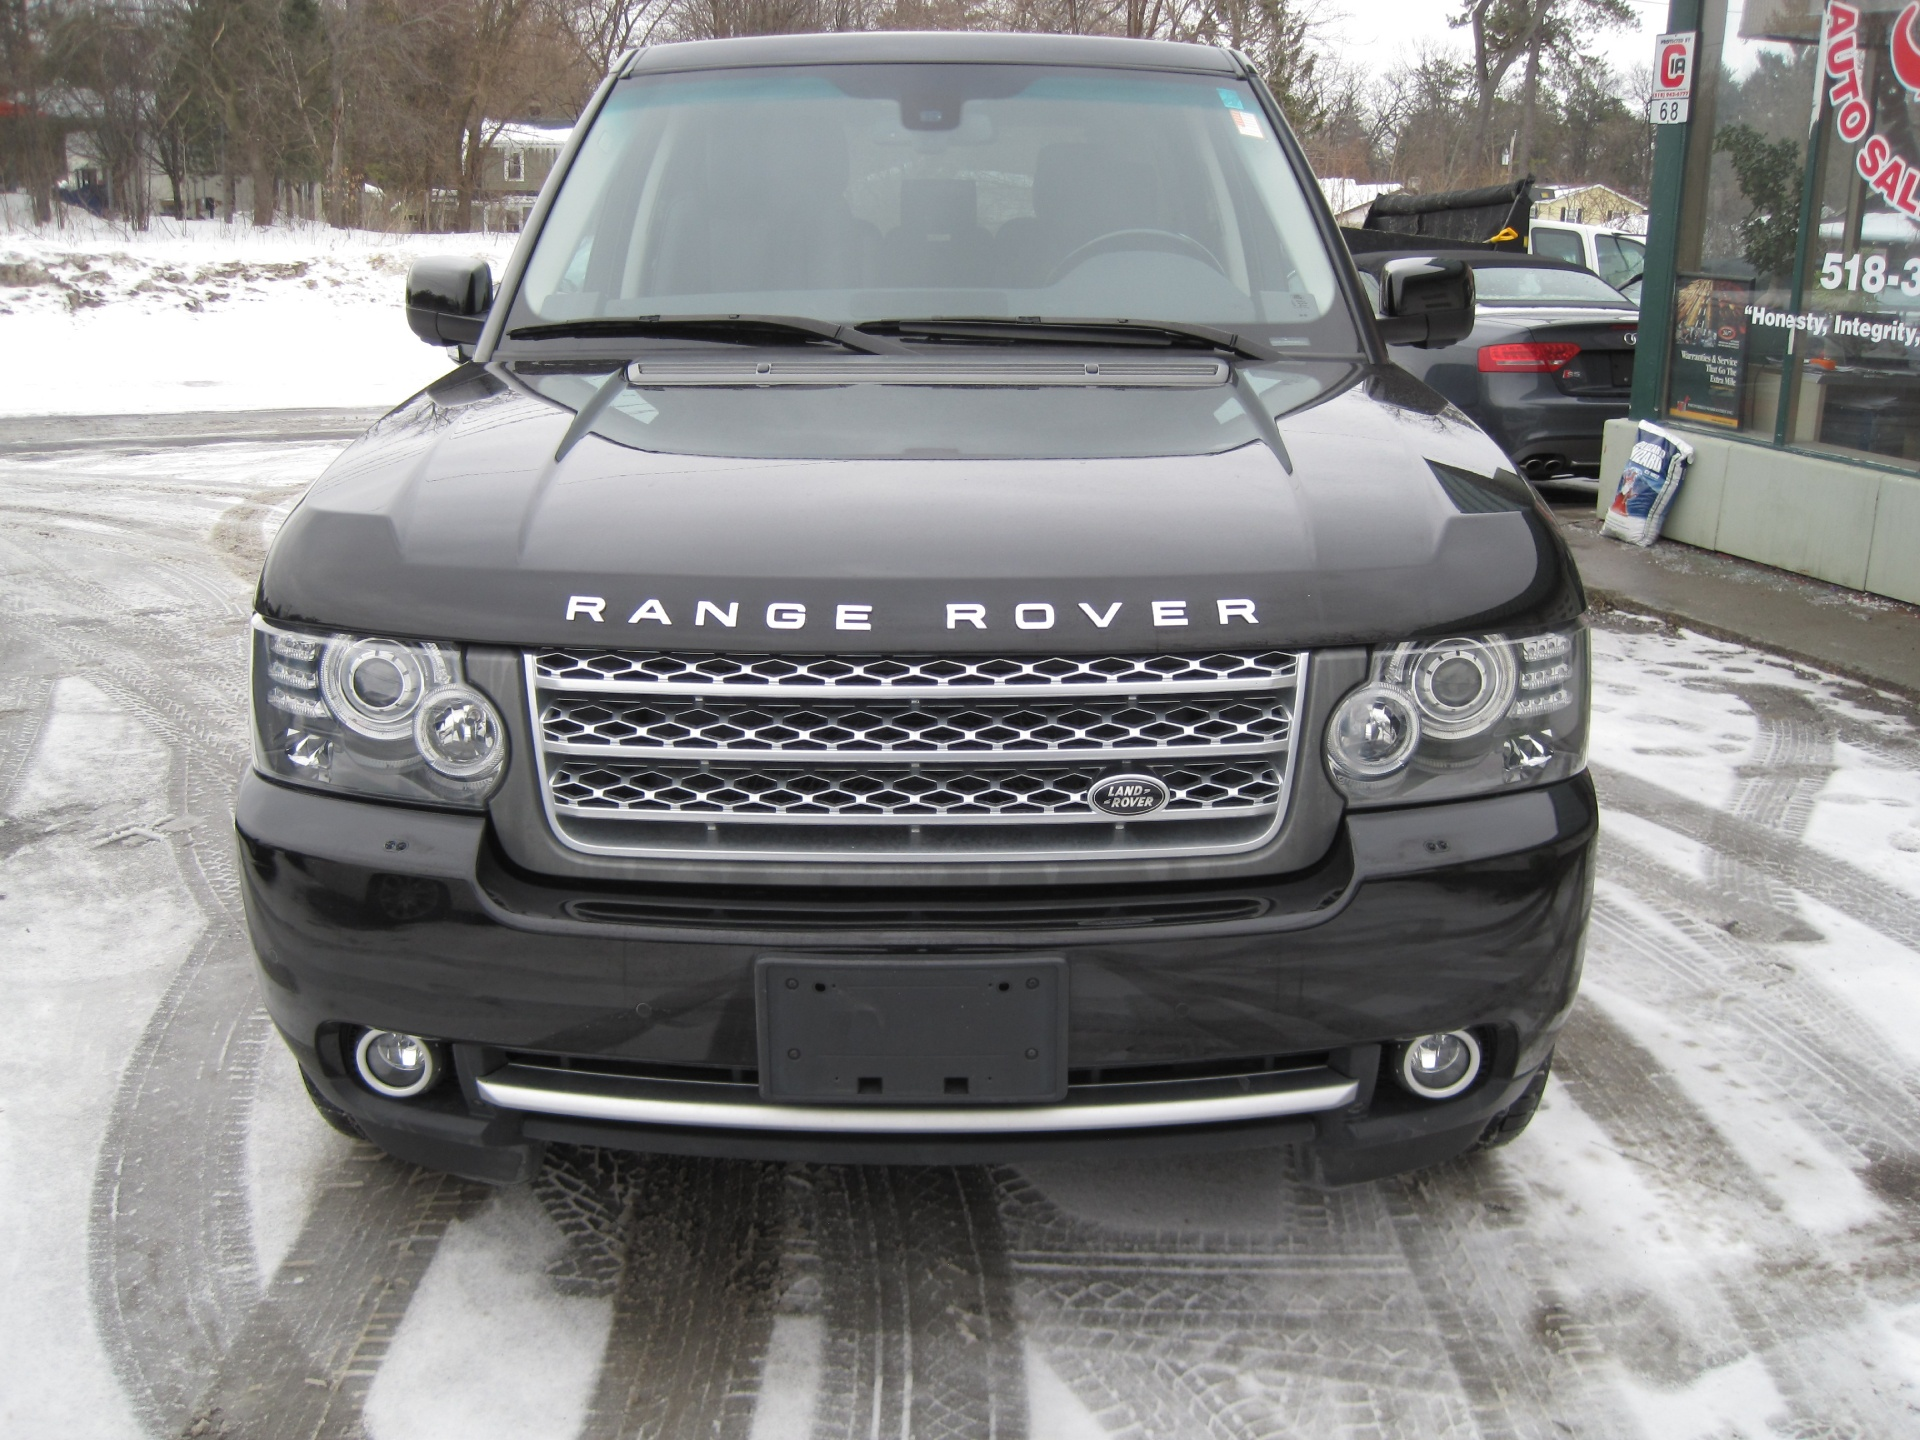 2010 land rover range rover supercharged 1 owner full history with service records stock 15030. Black Bedroom Furniture Sets. Home Design Ideas